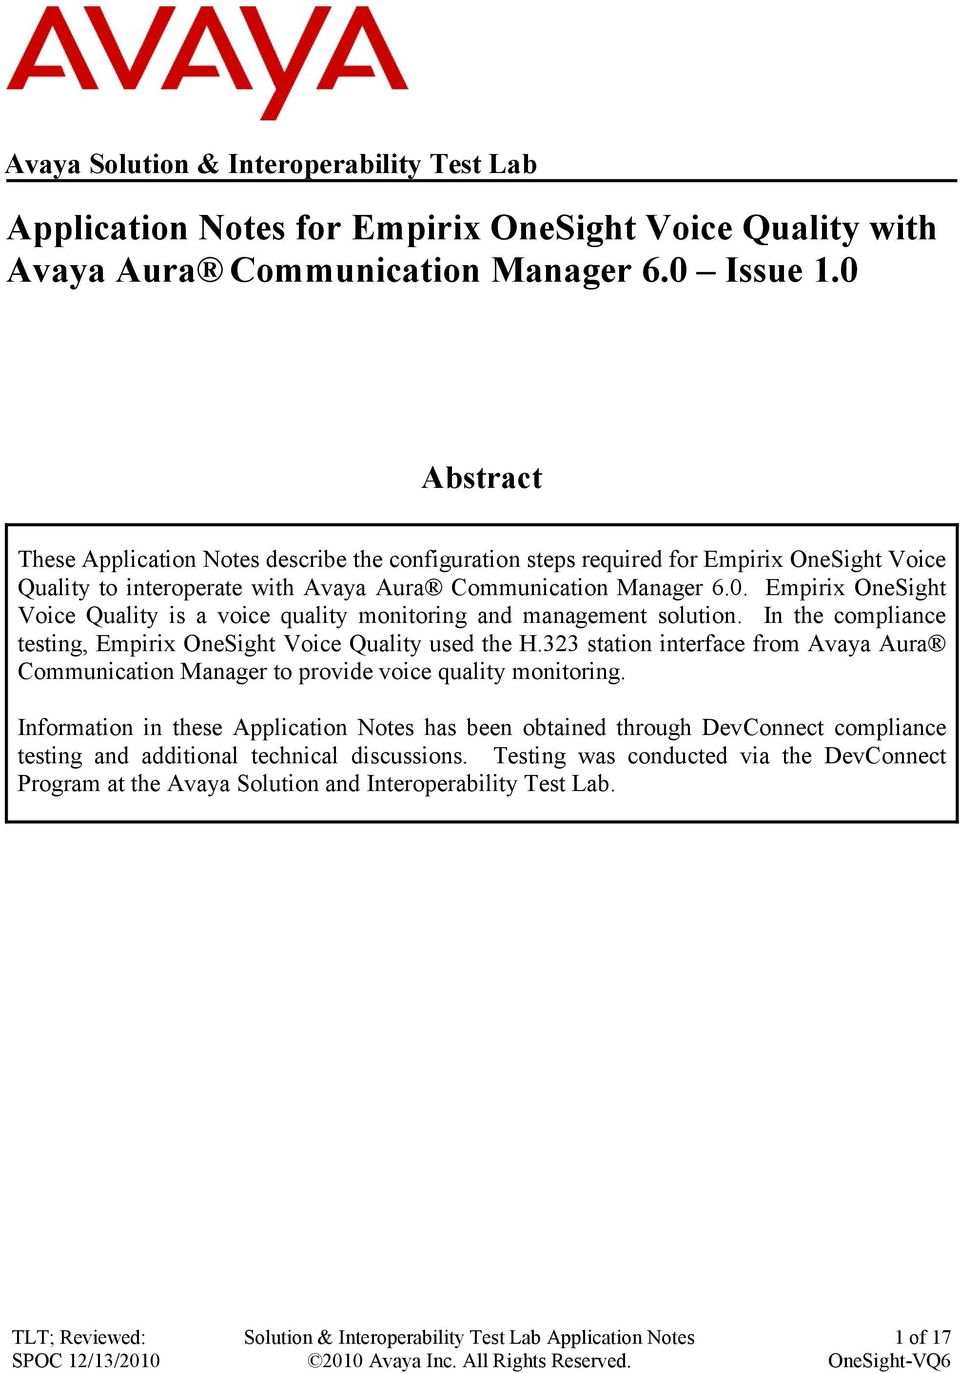 In the compliance testing, Empirix OneSight Voice Quality used the H.323 station interface from Avaya Aura Communication Manager to provide voice quality monitoring.